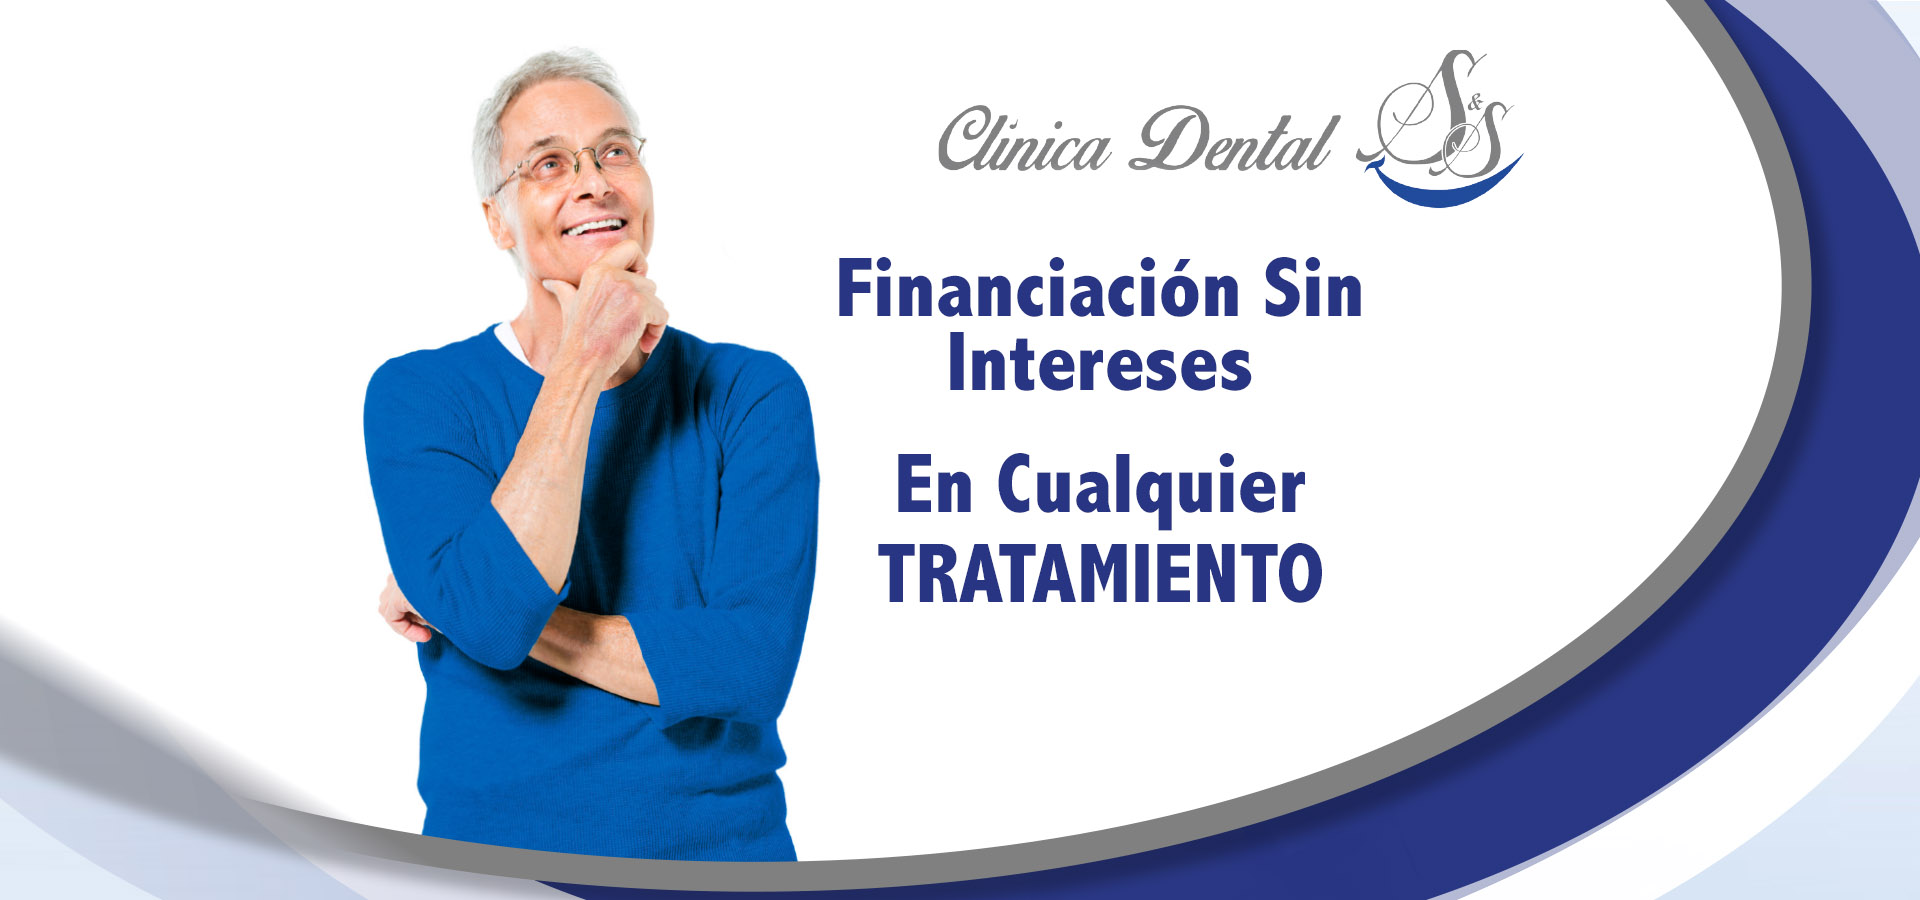 Financiación Sin Intereses en Clínica Dental SyS